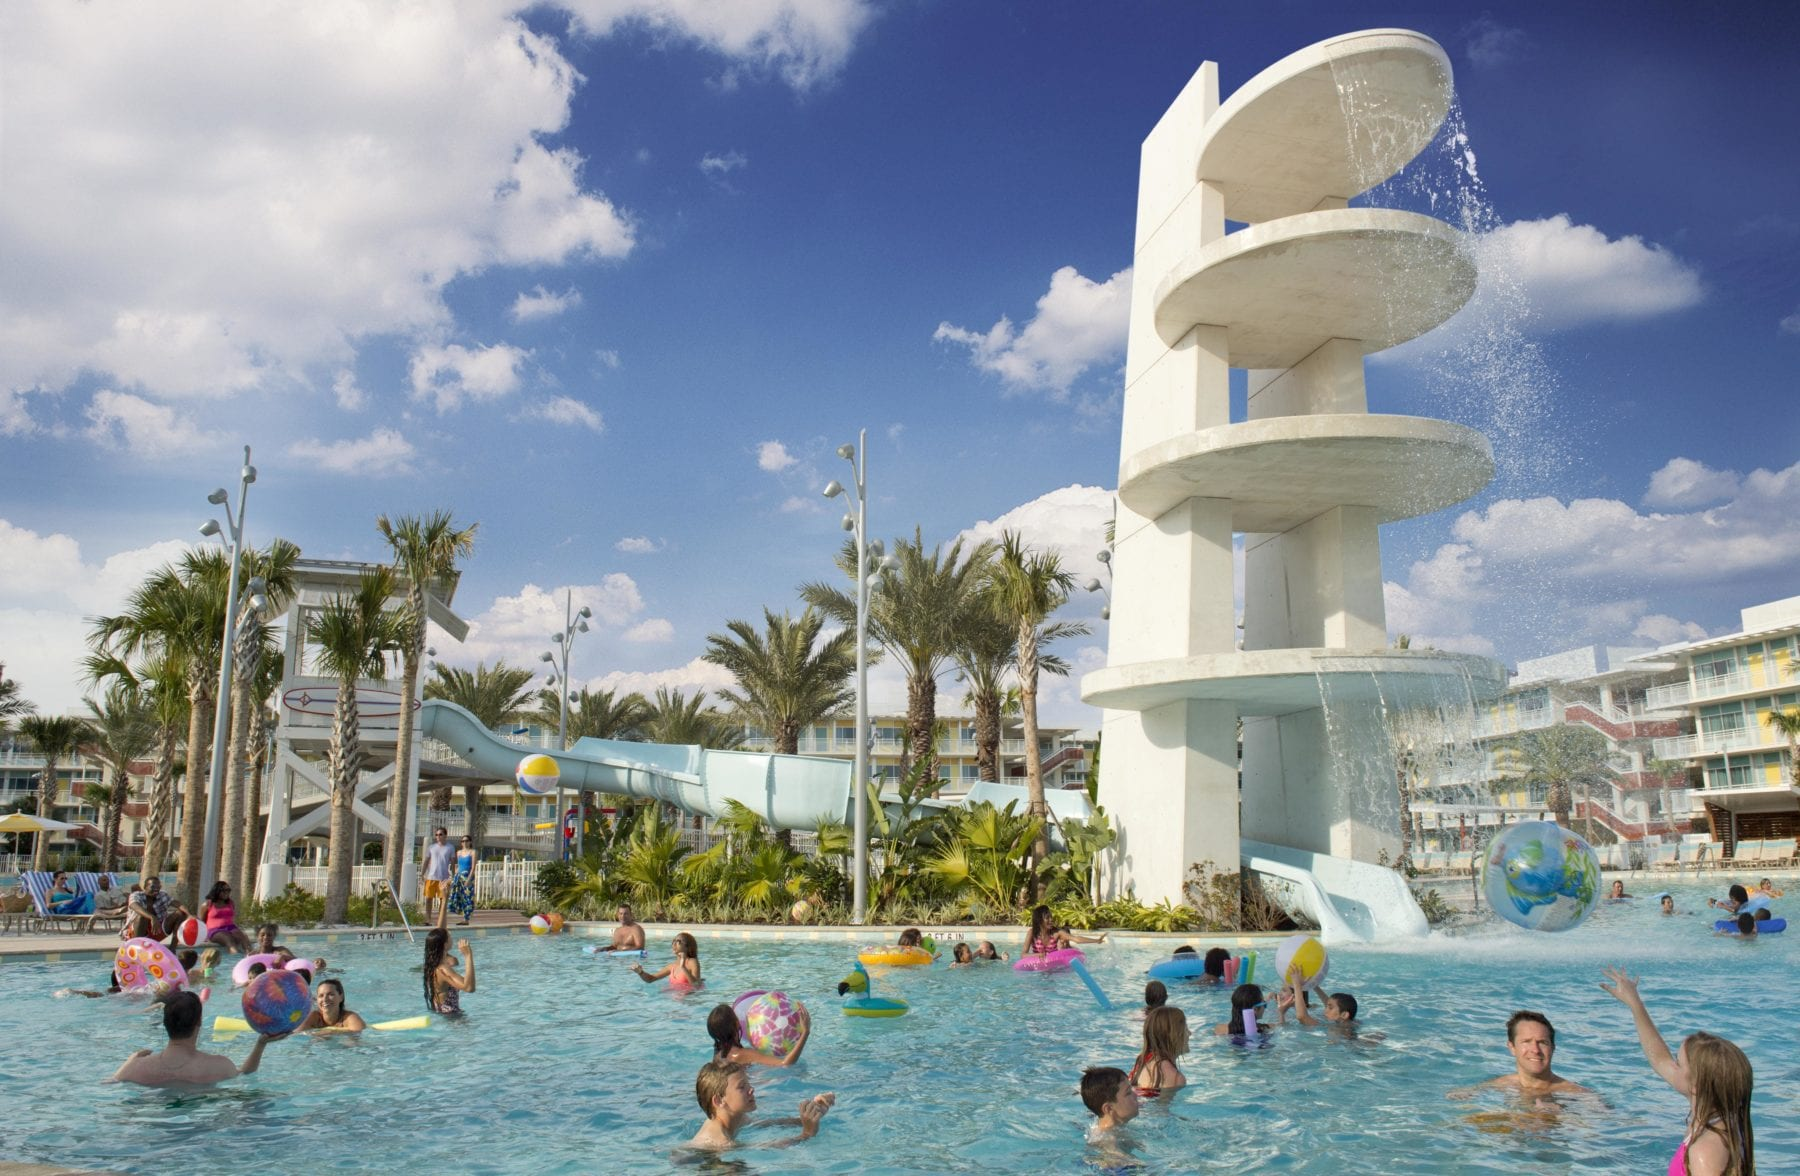 Cabana Bay Resort in Orlando